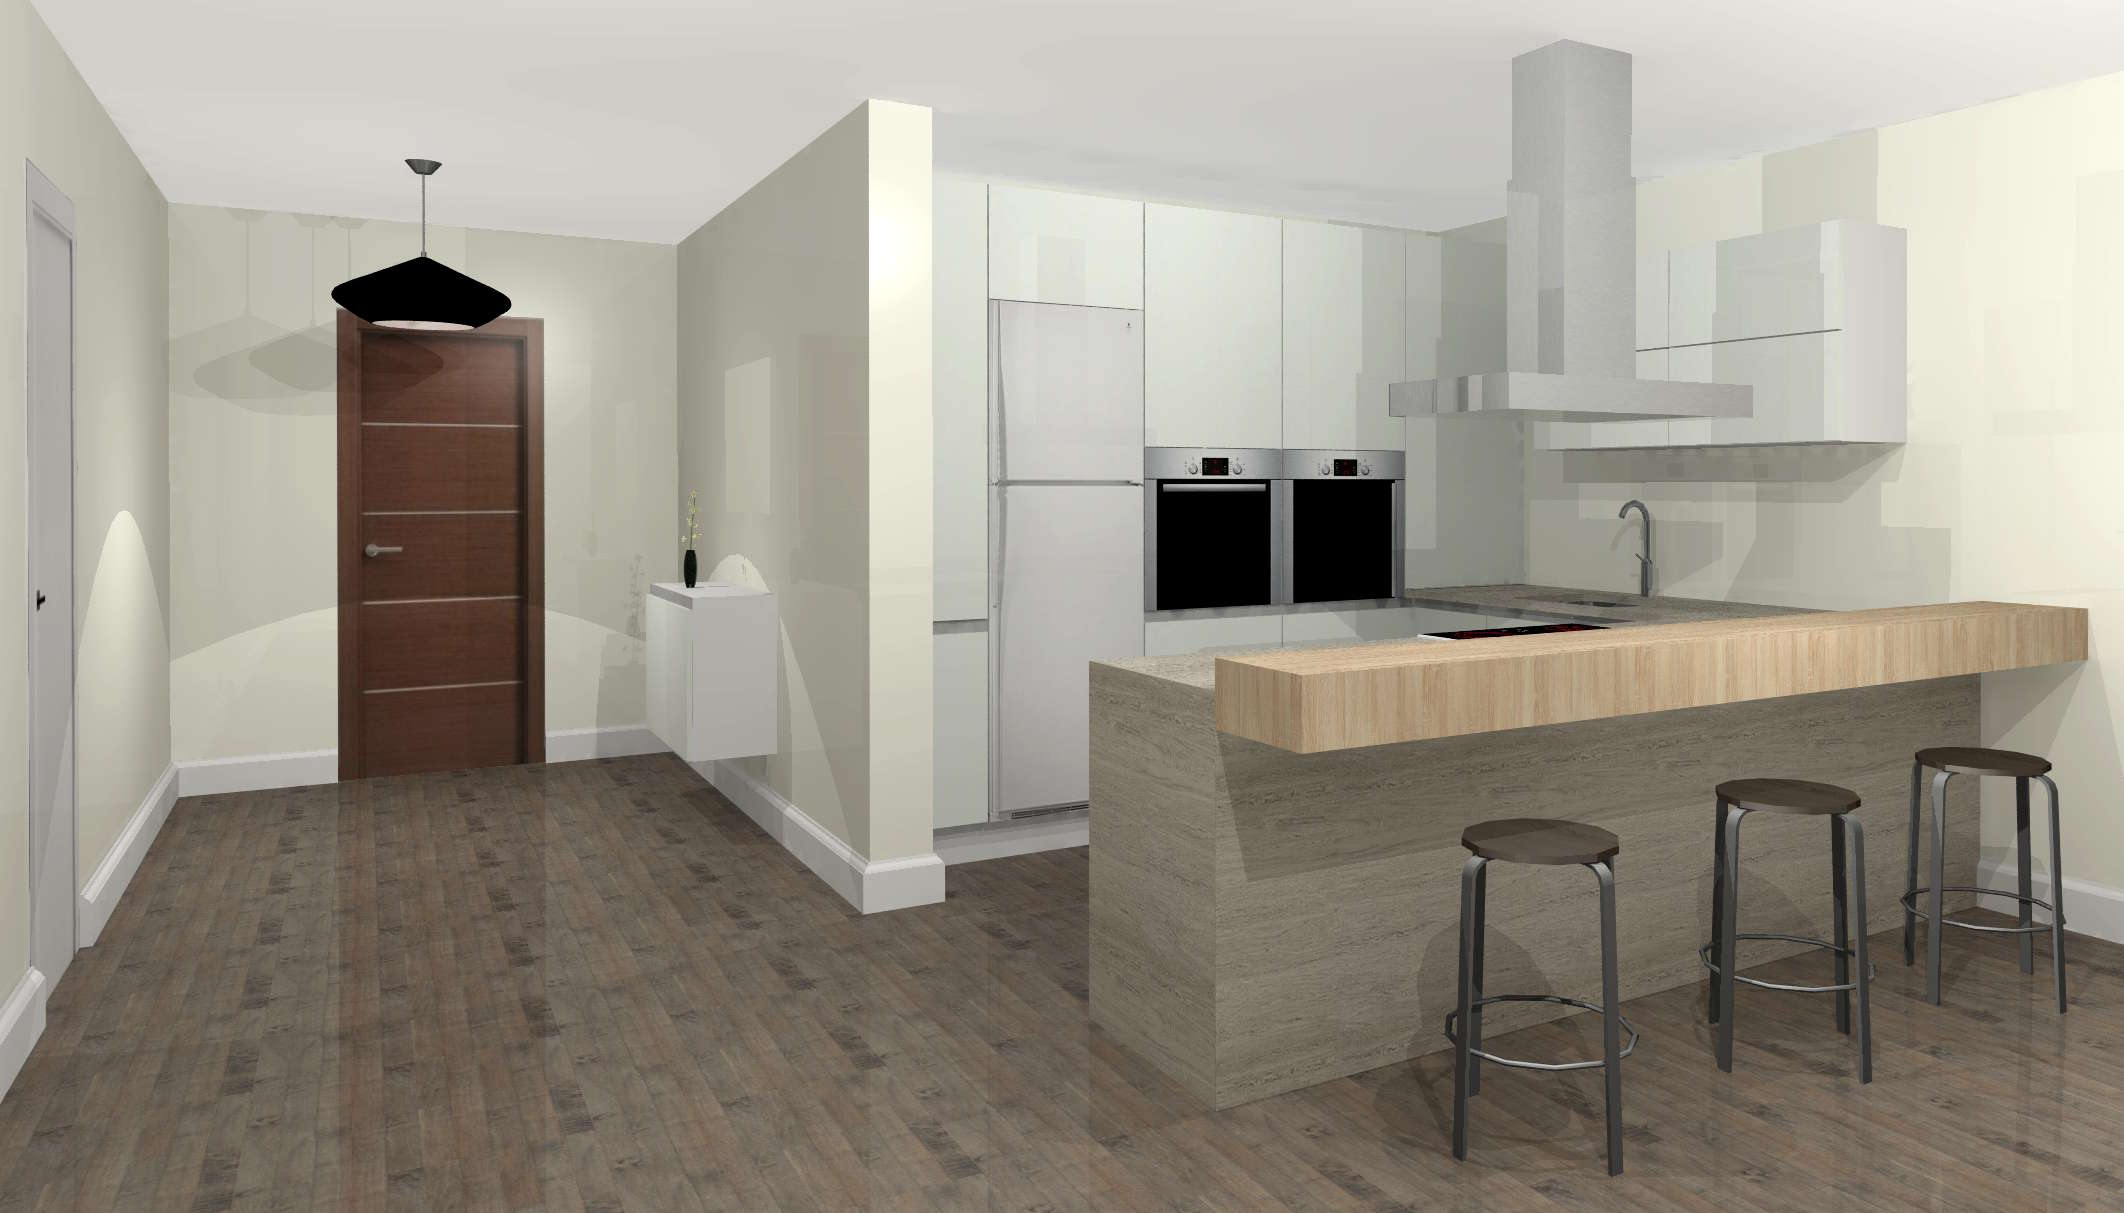 Main features of Quick3DPlan 8.0 for Windows, easy and affordable professional 3D kitchen design software.